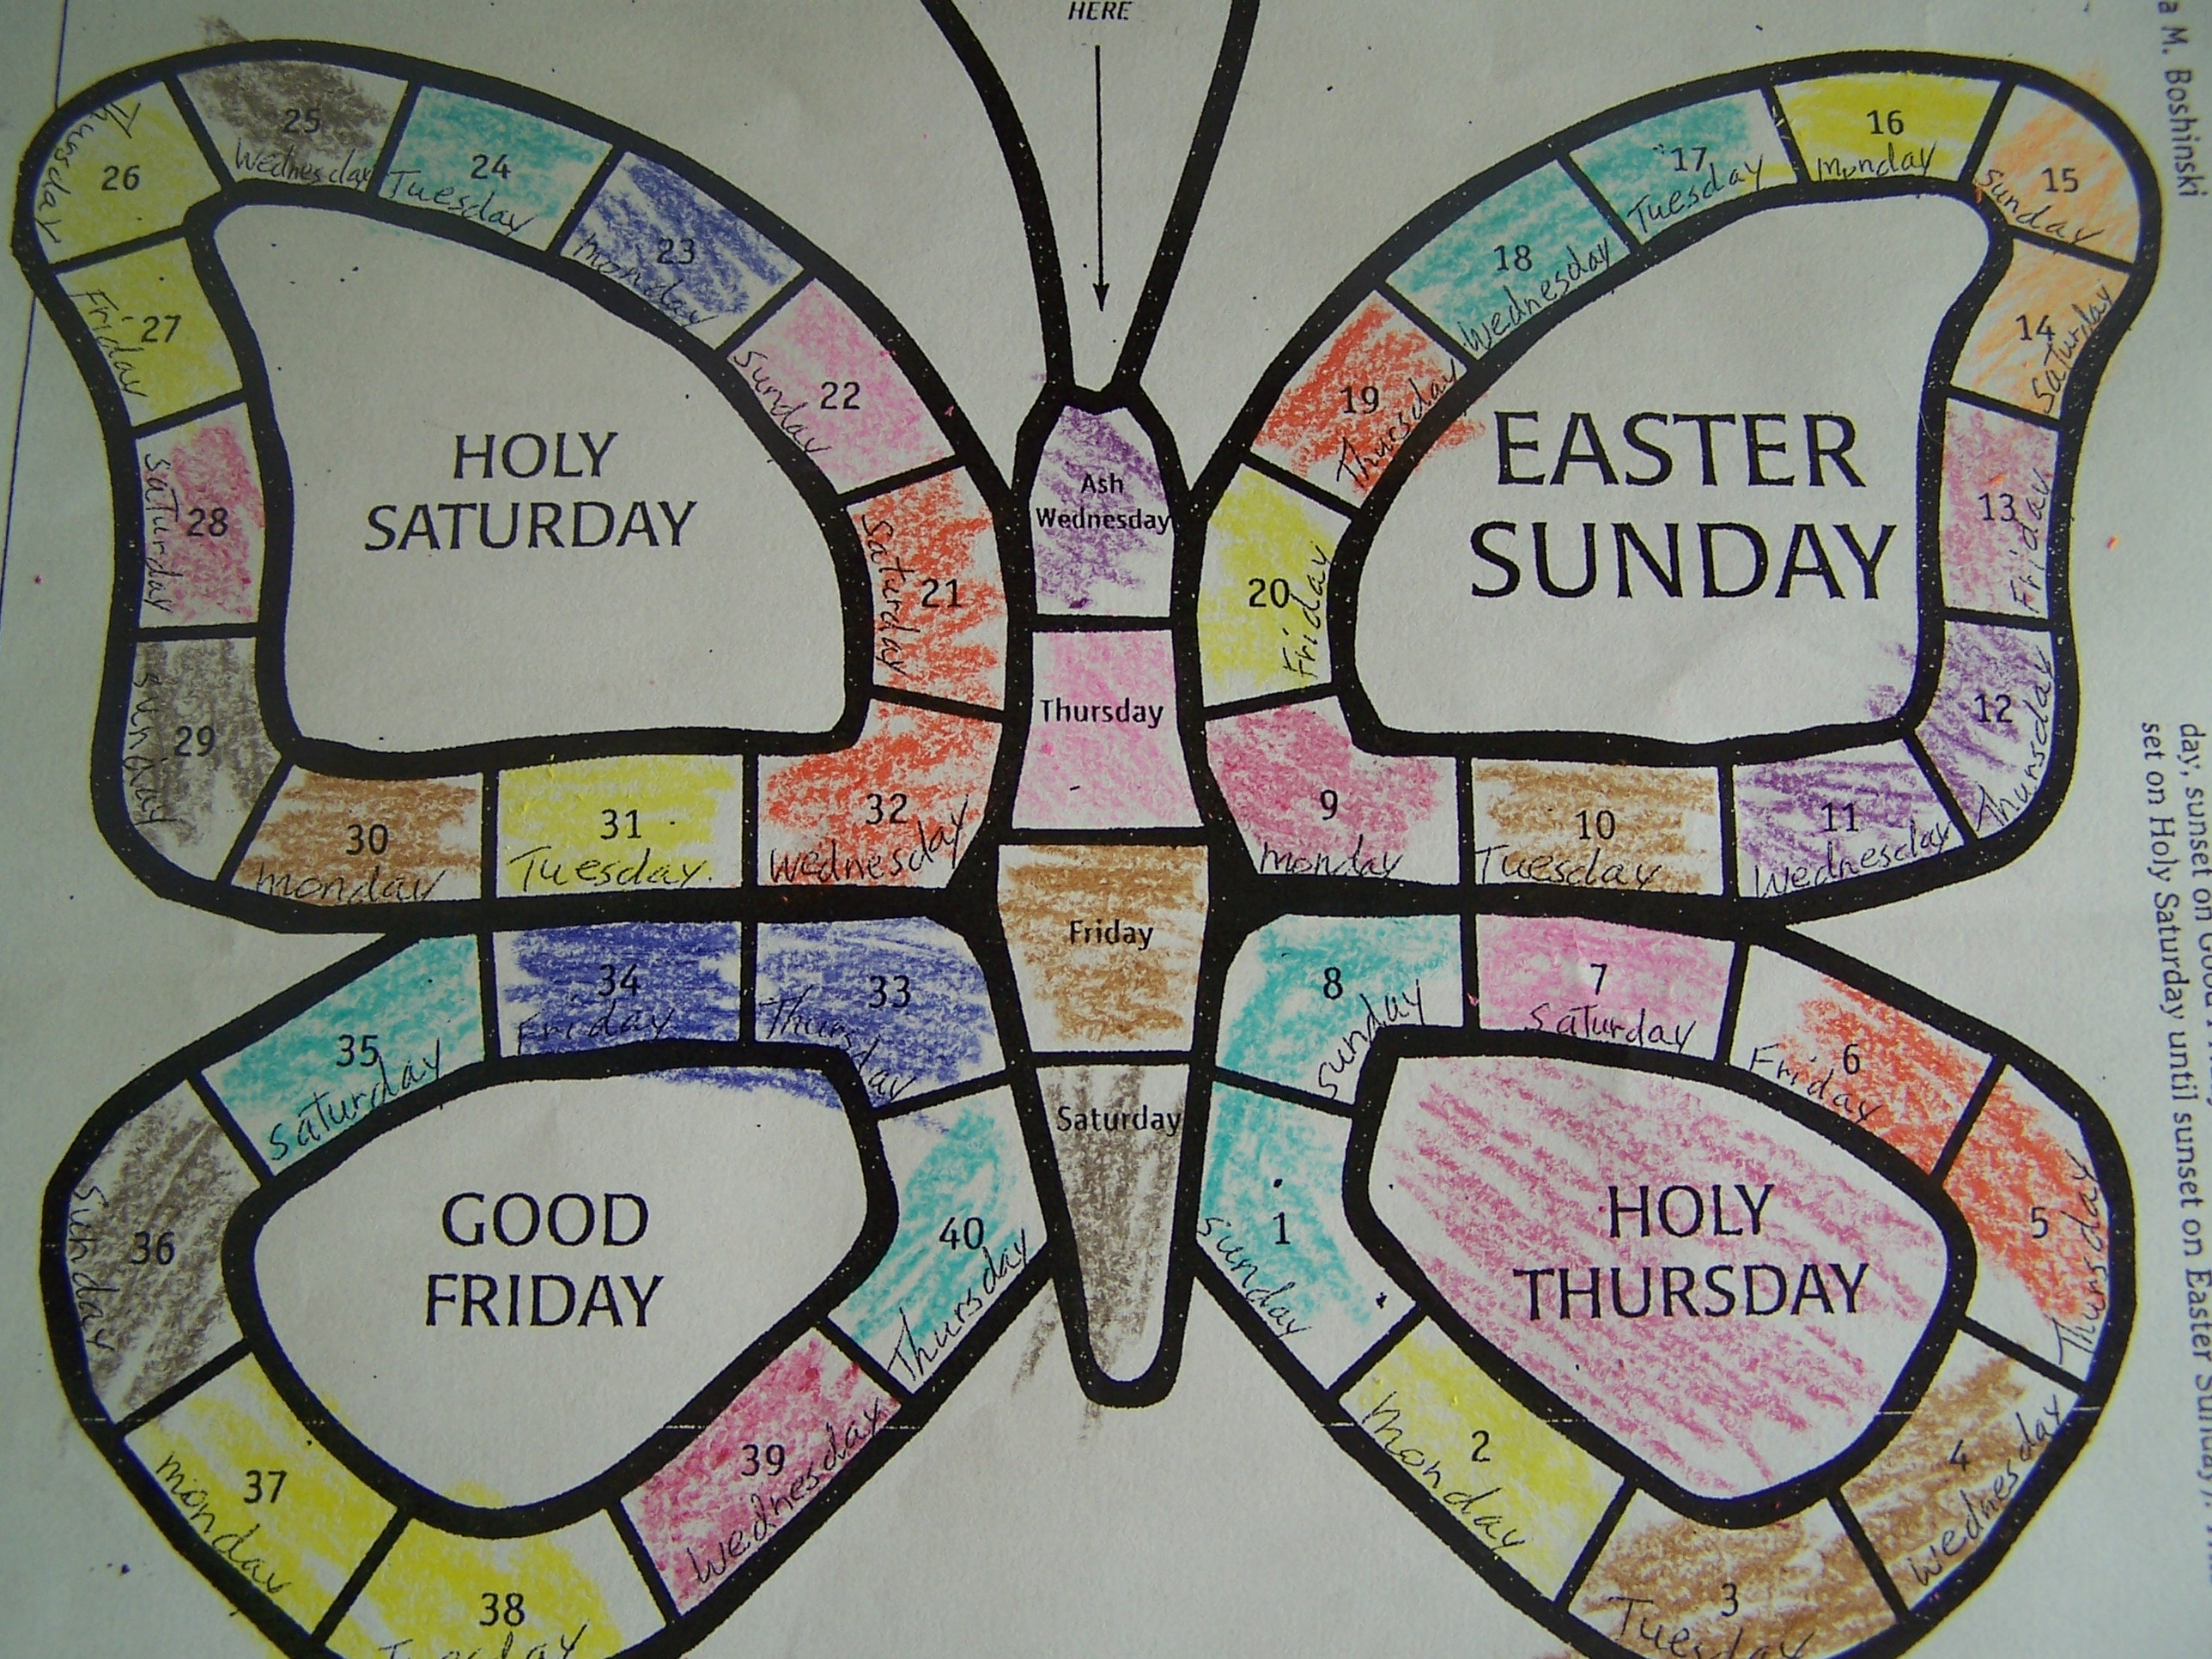 It is a graphic of Lent Coloring Pages Printable intended for bible verse